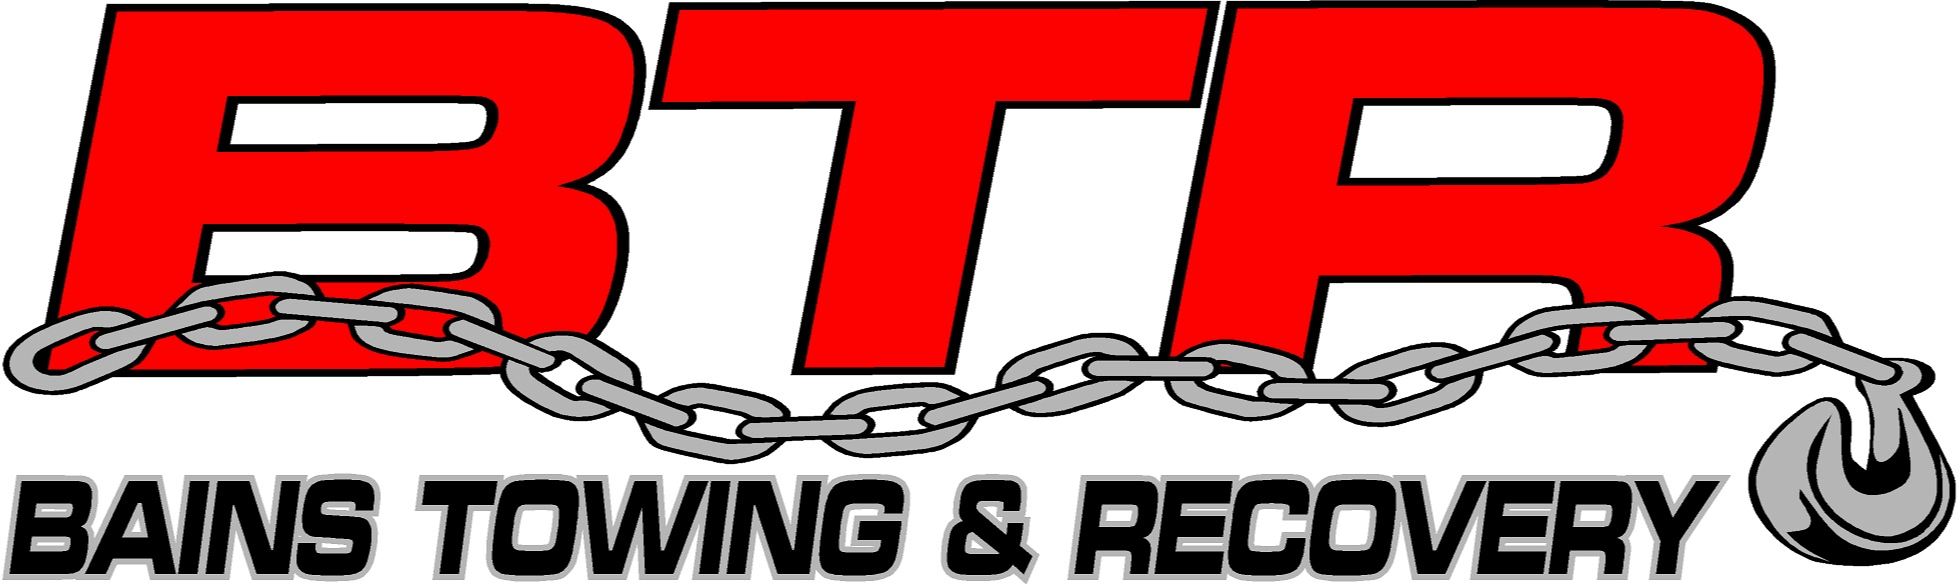 Bains Towing & Recovery LLC Towing.com Profile Banner